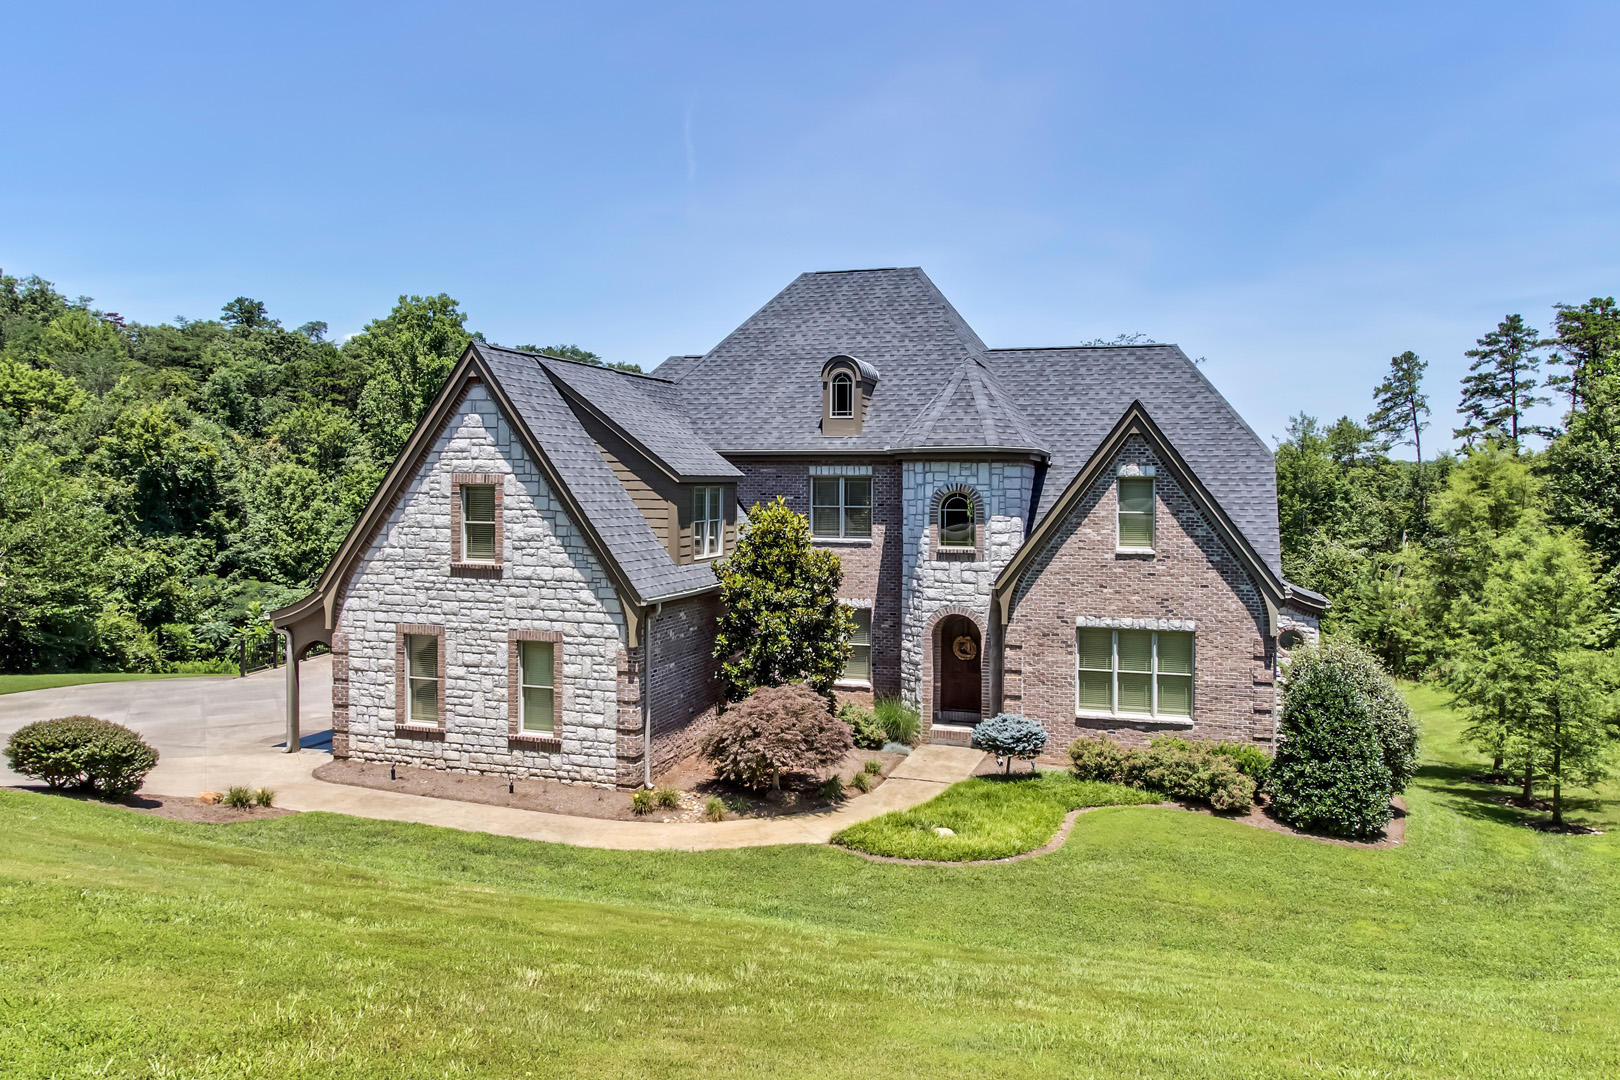 12215 CHANNEL POINT DRIVE, KNOXVILLE, TN 37922